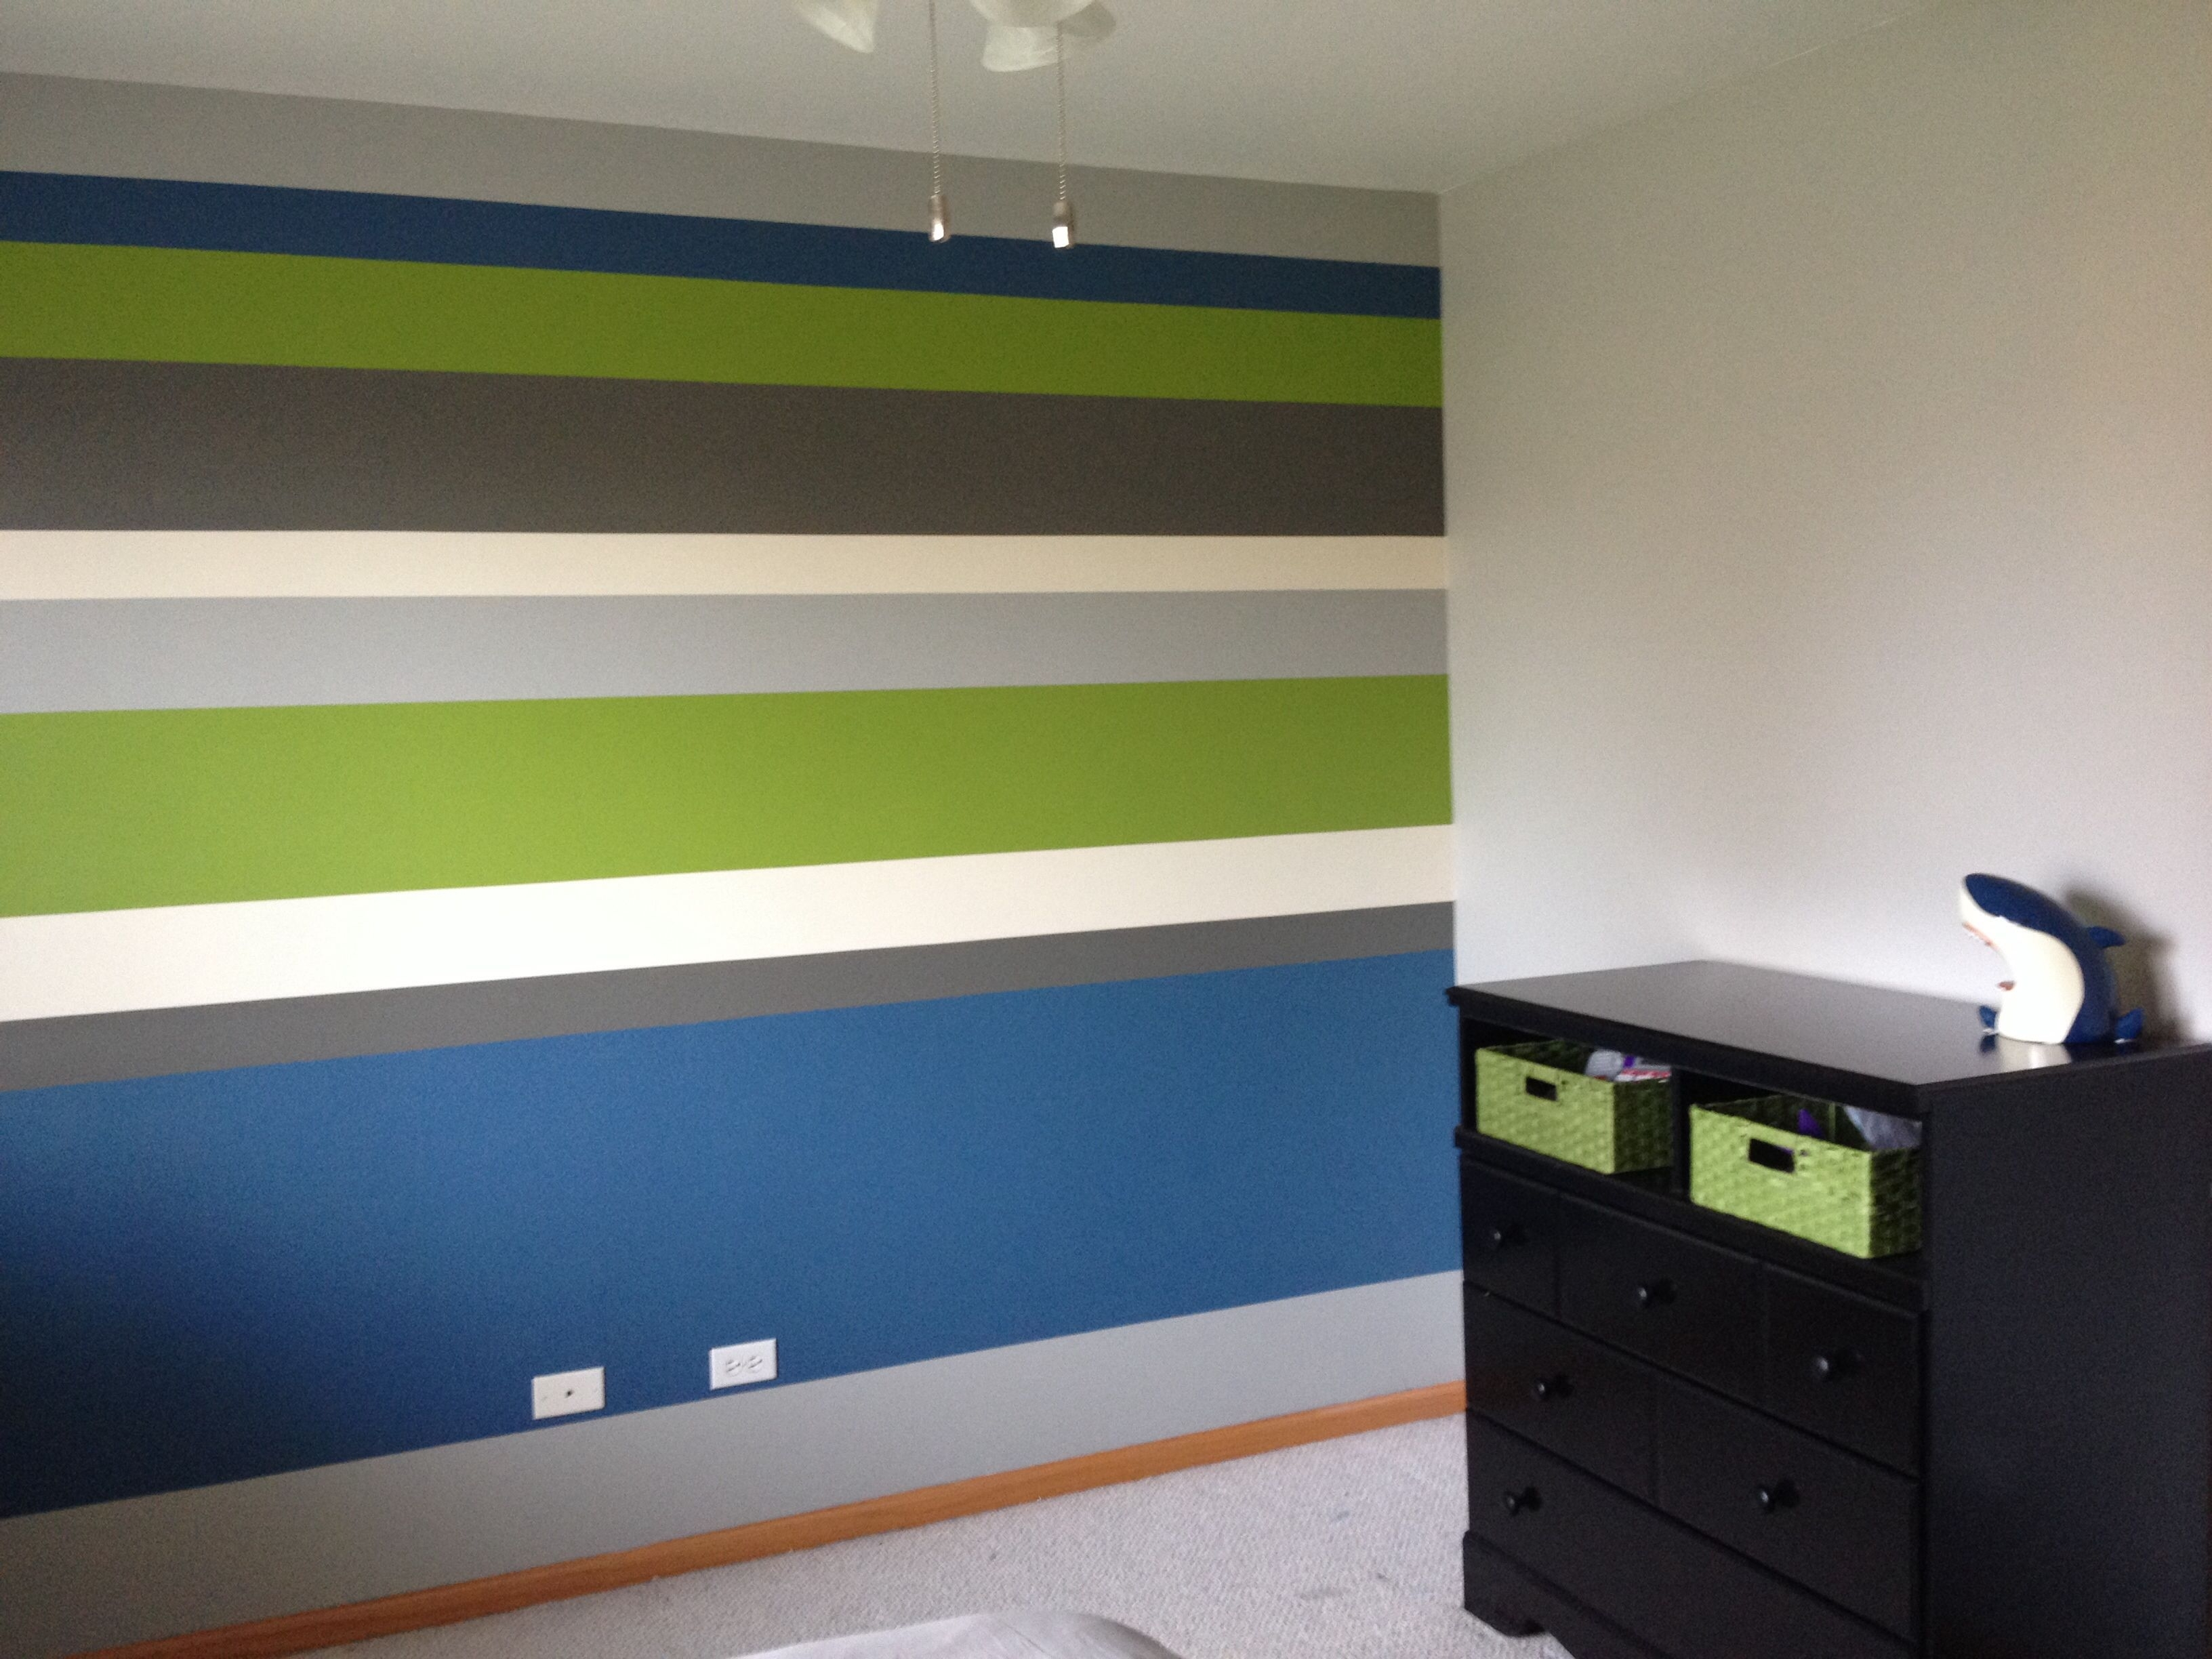 Boys Bedroom! Horizontal Stripes Accent Wall! Bm Stonington Gray Intended For 2018 Horizontal Stripes Wall Accents (View 3 of 15)